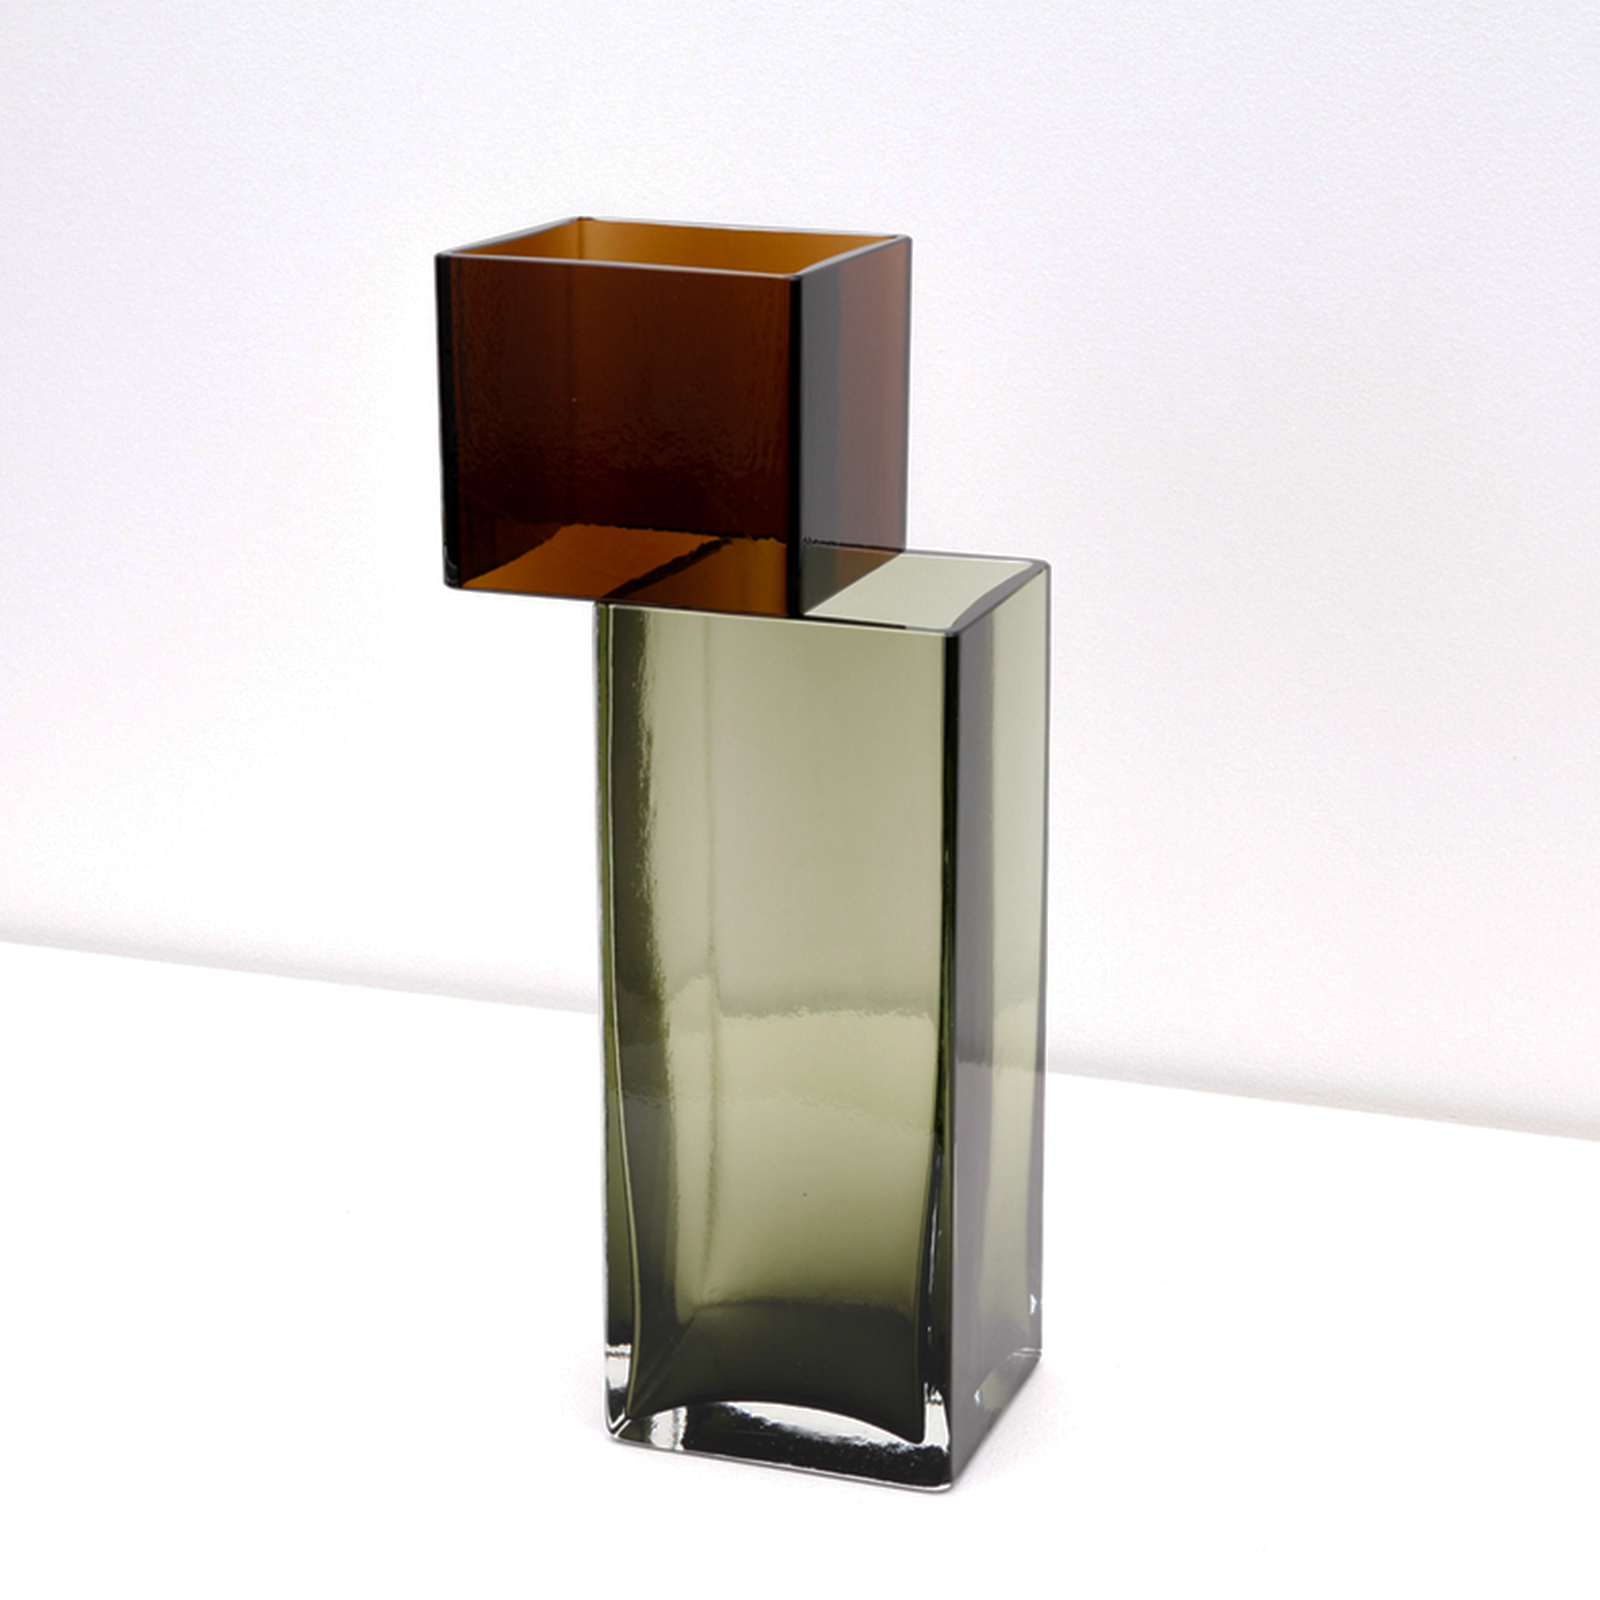 Graft Vase C In Cognac And Sage Hand Blown Glass By Liam Fleming 2